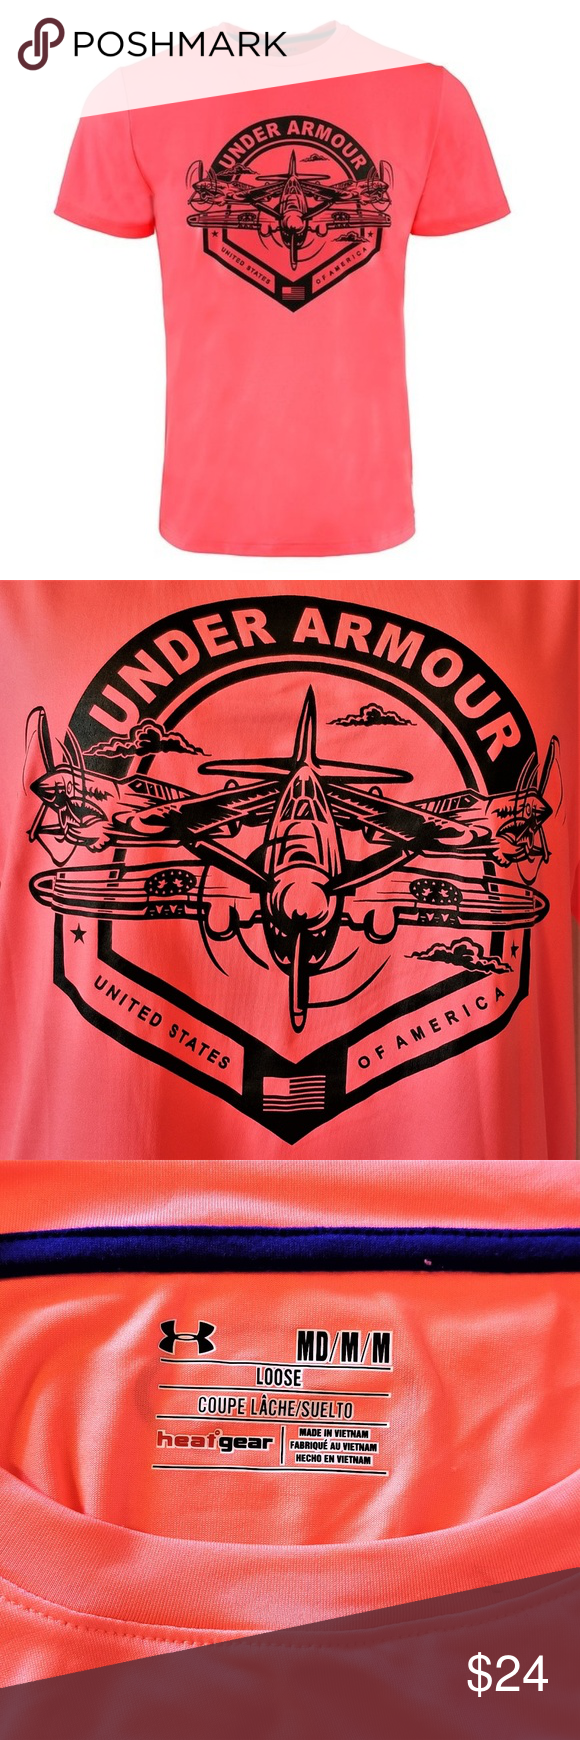 UNDER ARMOUR USA Air Force Graphic Tee Jet Neon Graphic